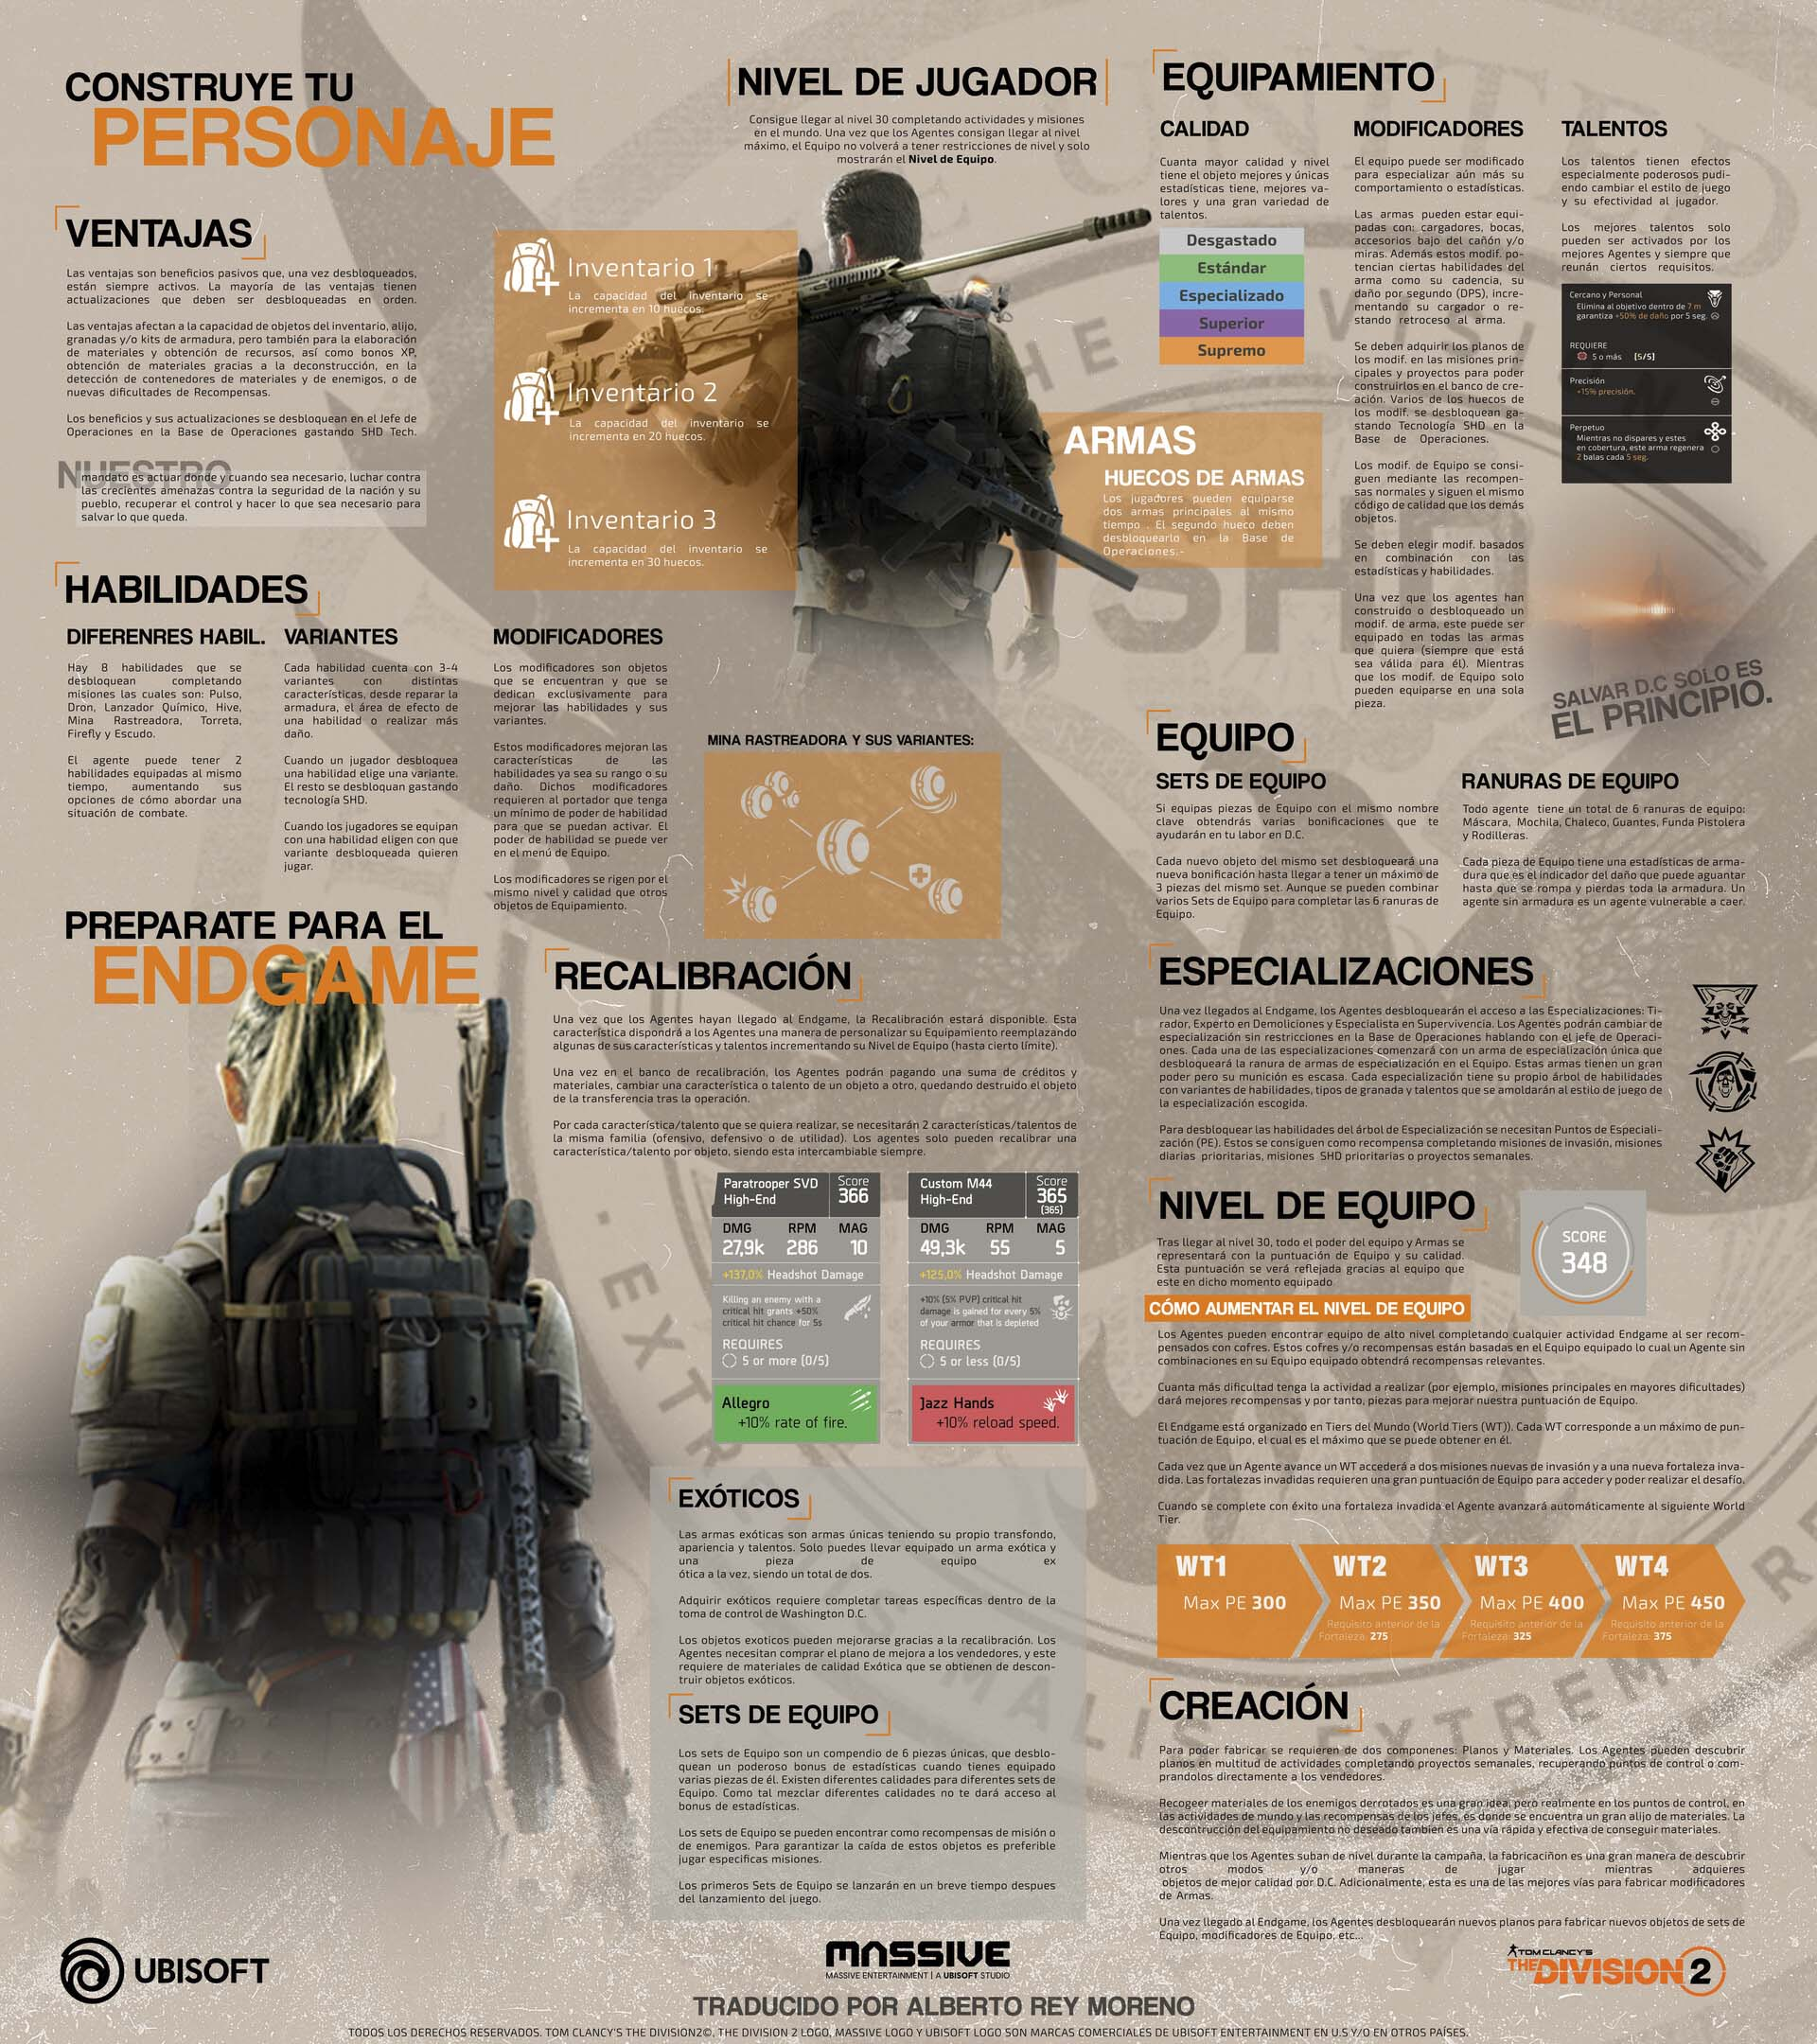 The Division 2 Spanish Character Progression Infographic   By Alberto Rey Moreno